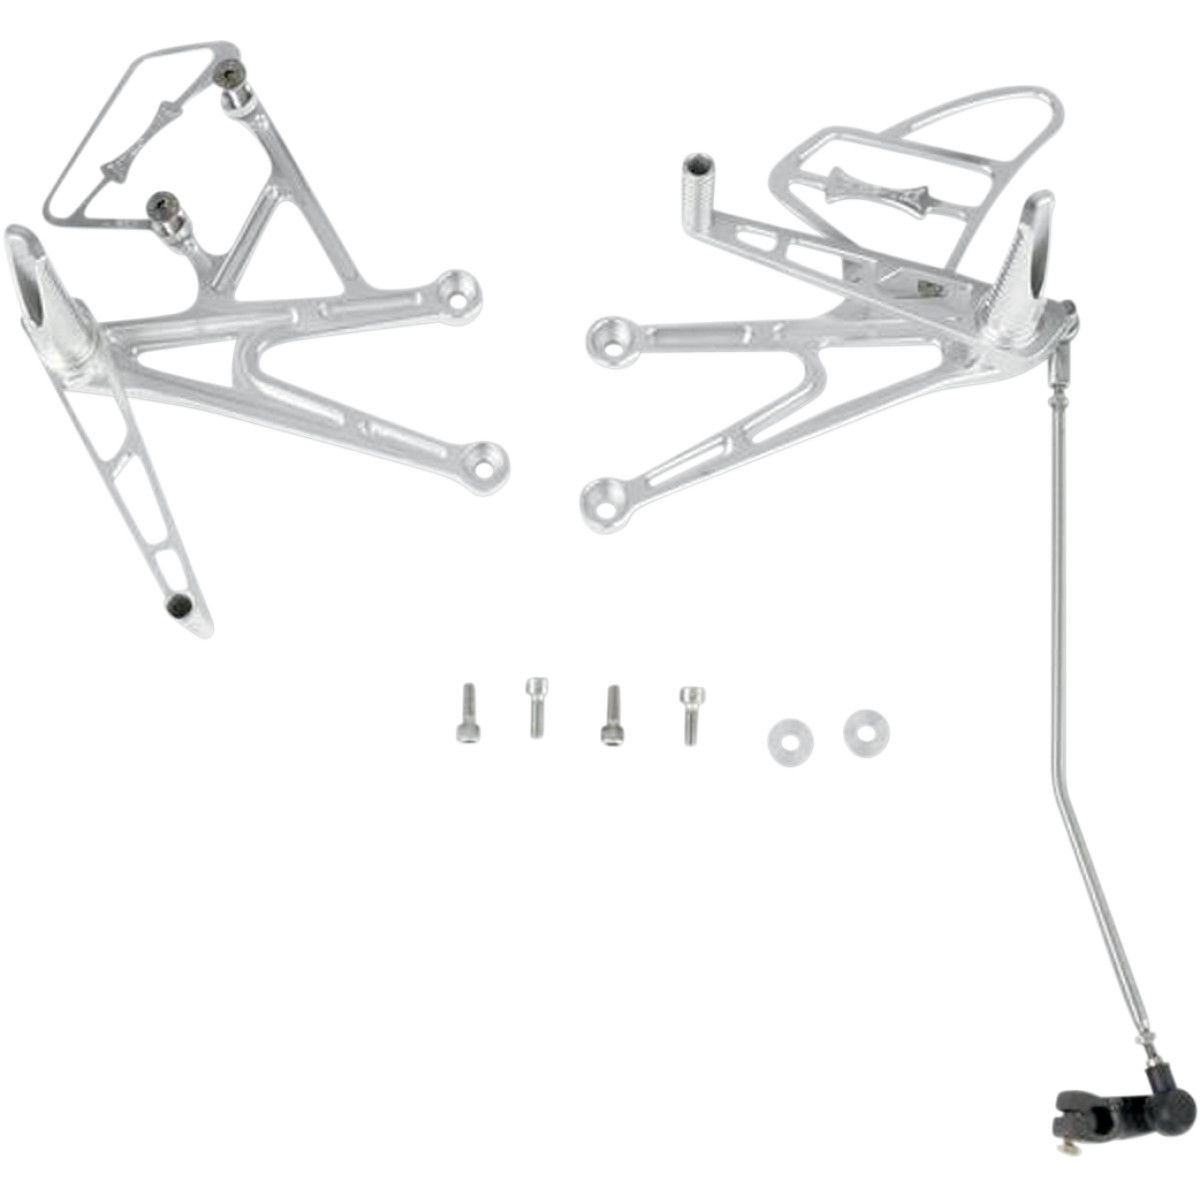 Rear Sets RS-480 Kit/Parts